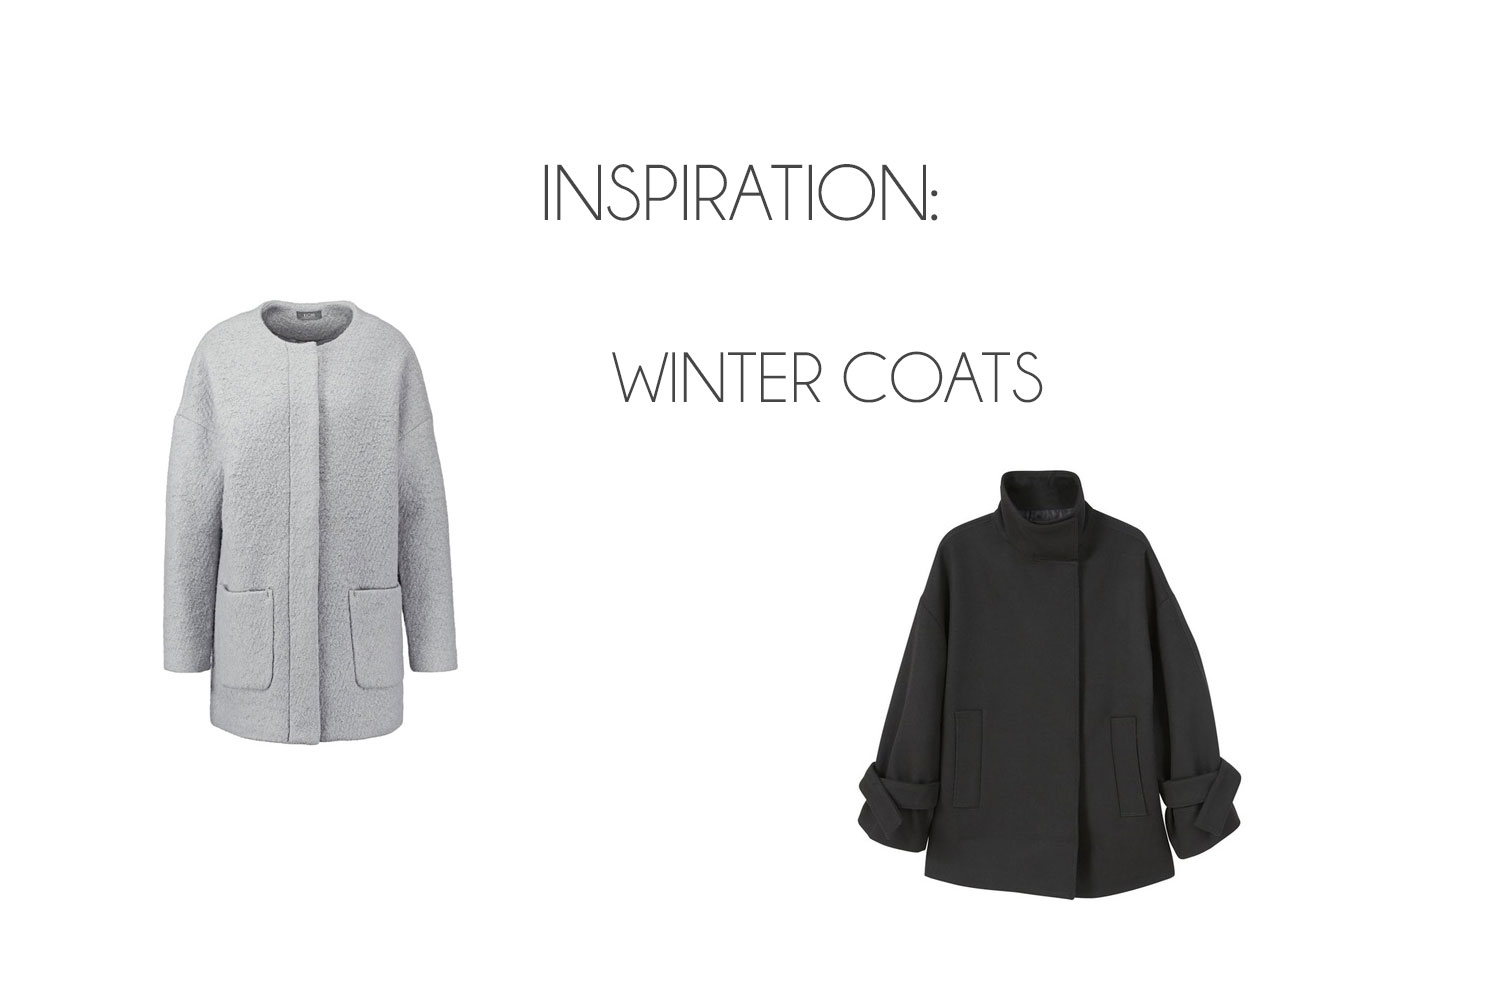 Inspiration: Winter Coats ♥ - Winter Coats